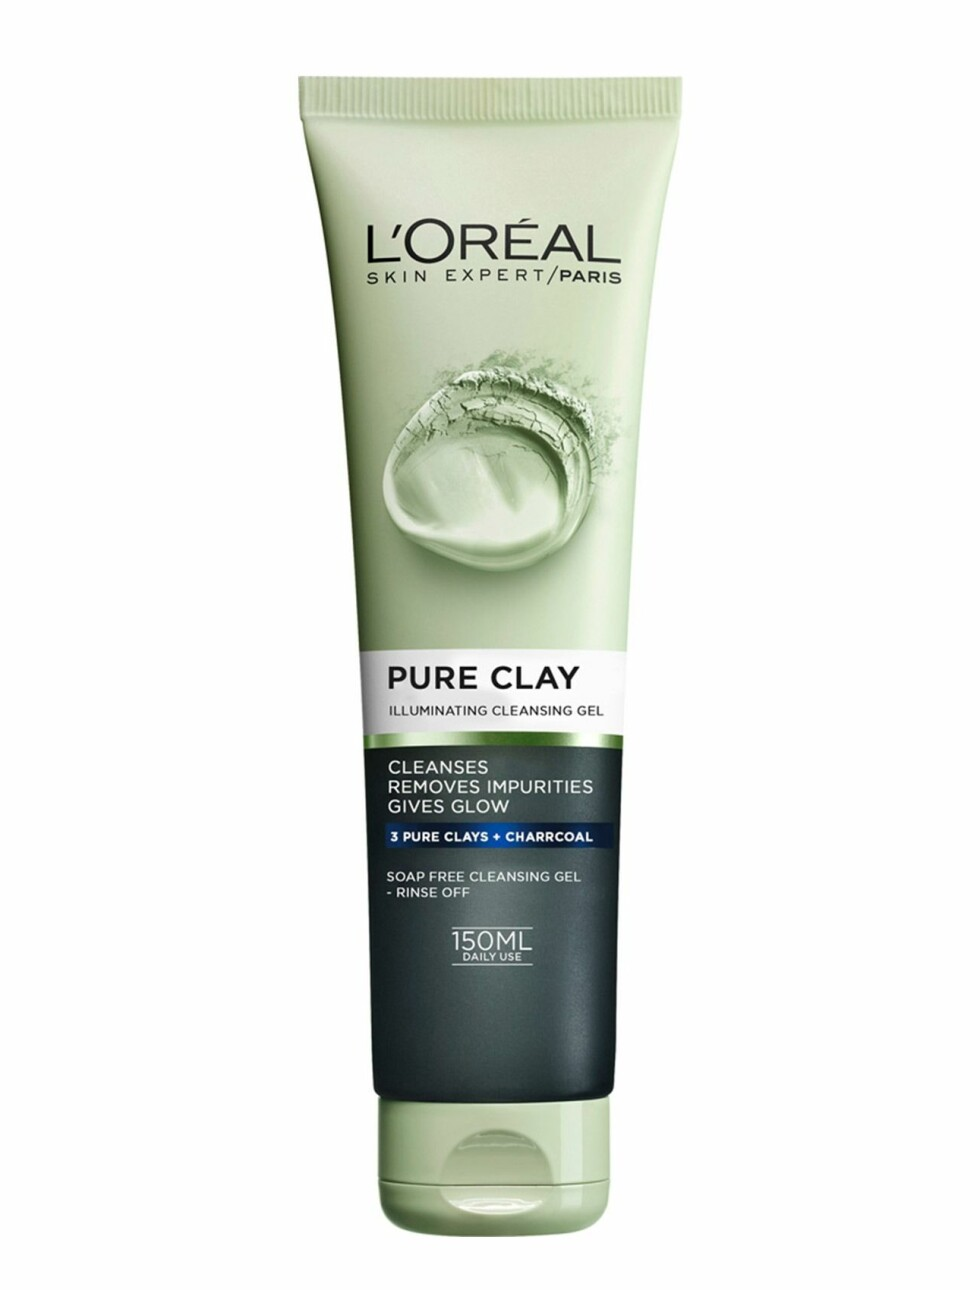 Cleasning gel fra L'Oreal  79,-  https://www.boozt.com/no/no/loreal-paris/pure-clay-glow-scrub_17466750/17466751?navId=67599&group=listing&position=1400000